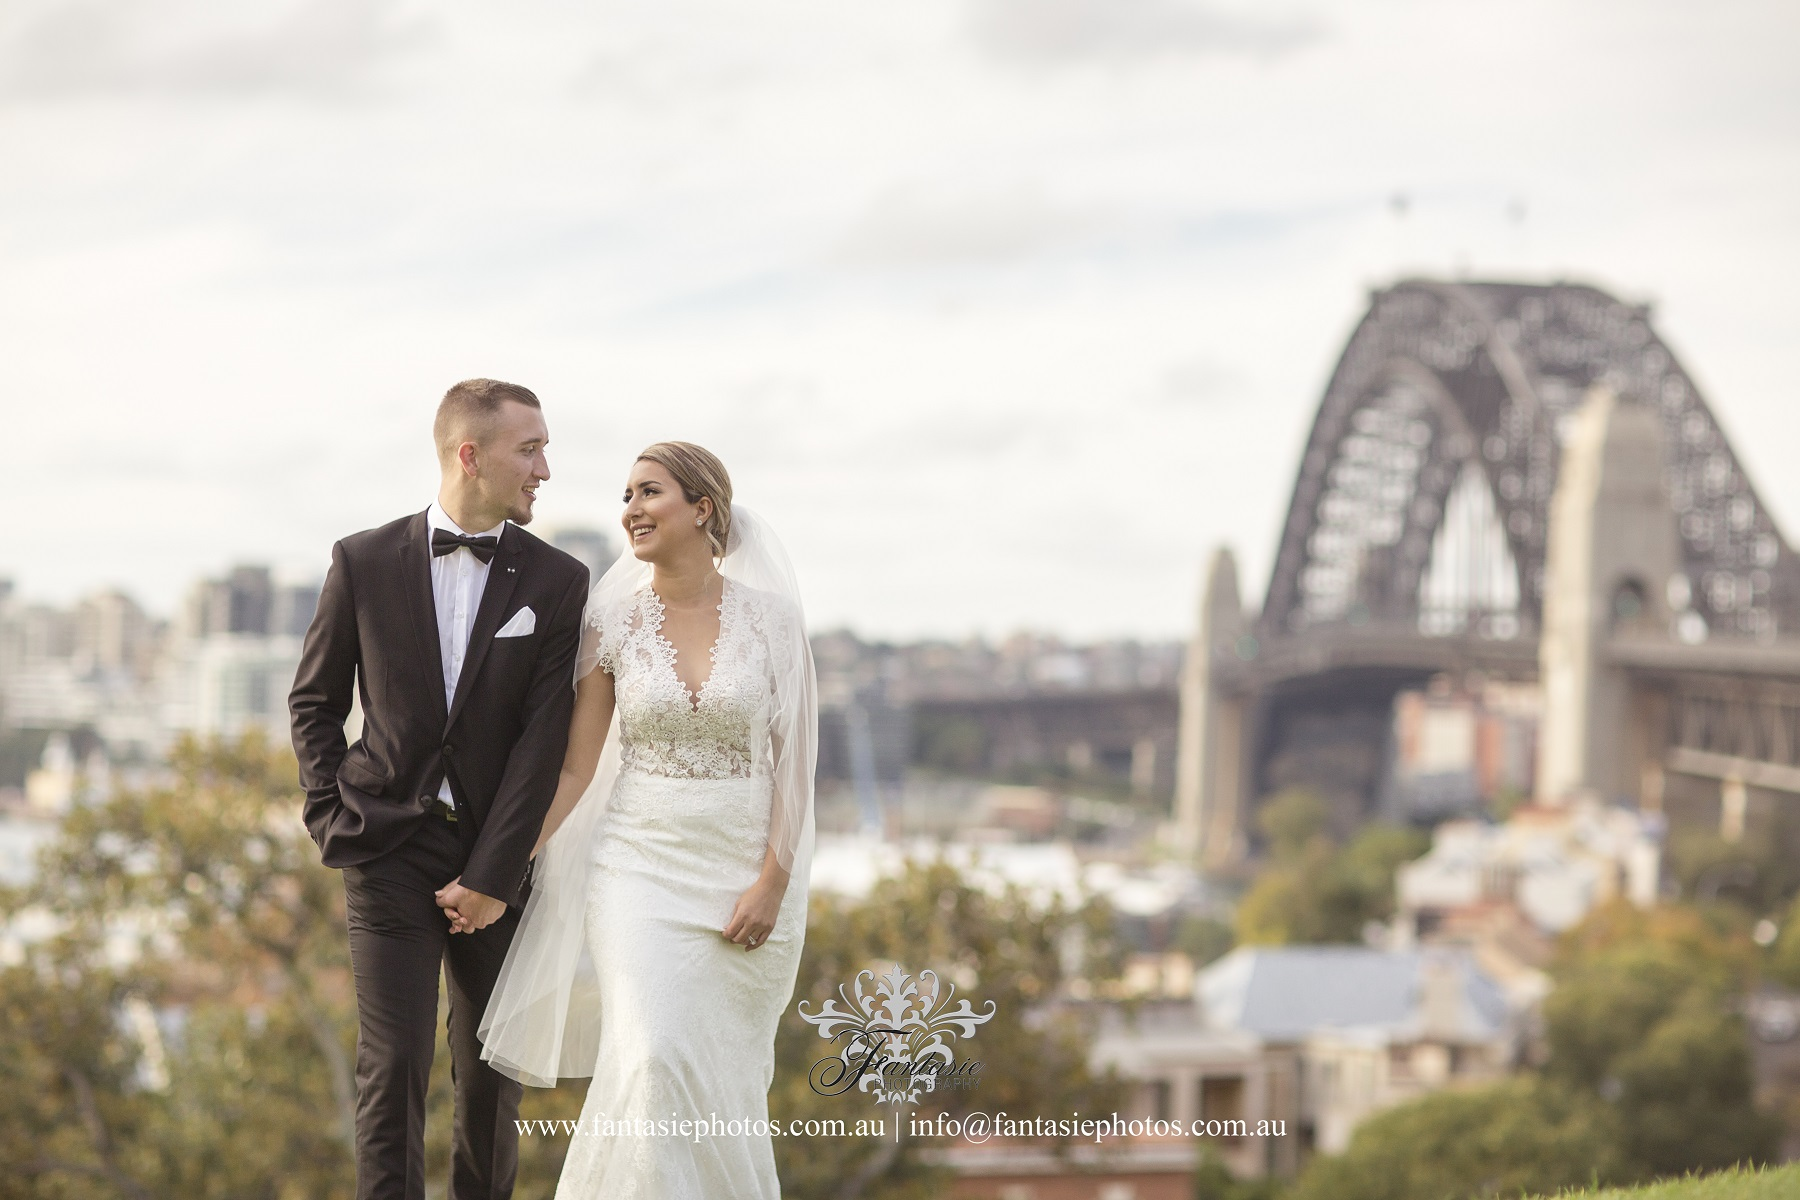 Gorgeous Bride & Handsome Groom Location Shoot at Observatory Hills